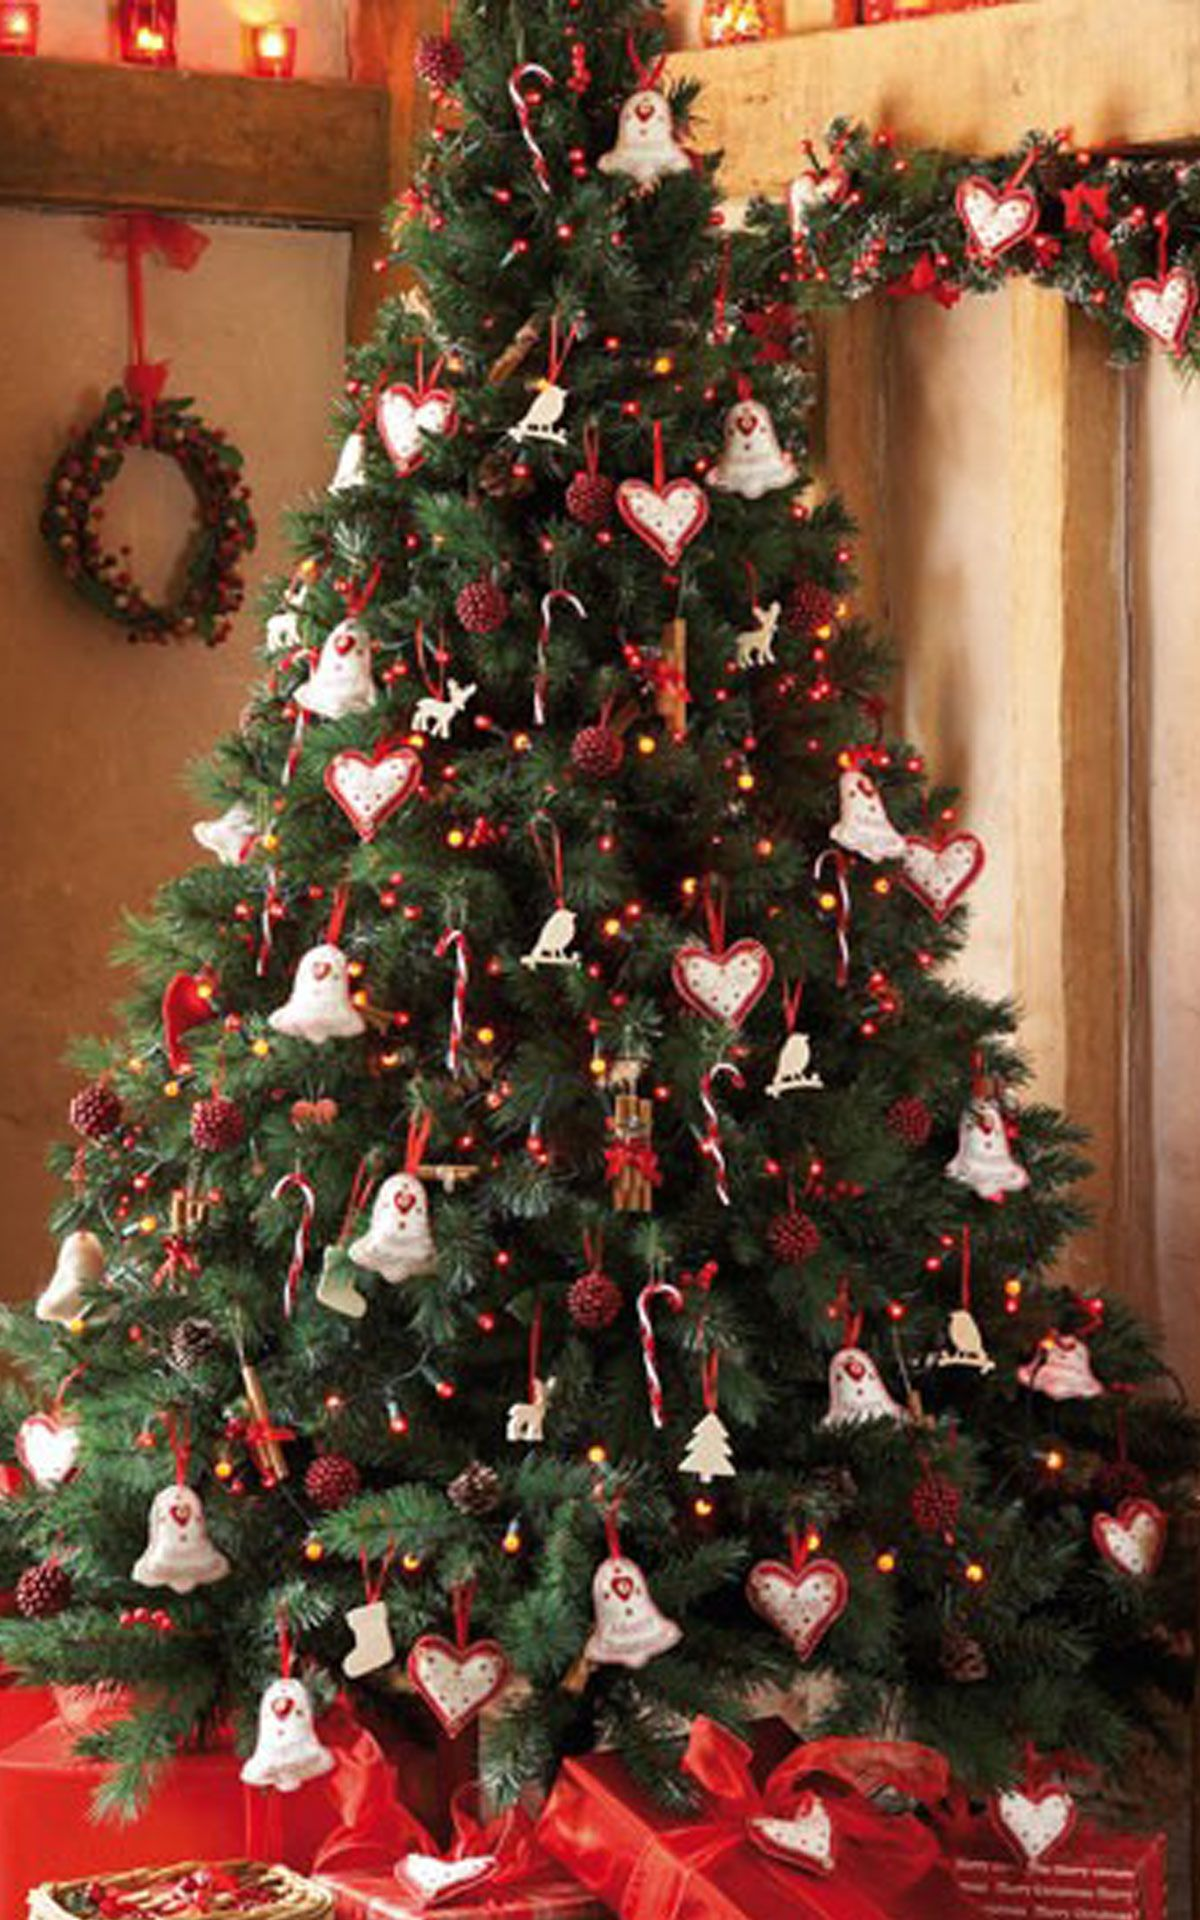 xmas tree decorating ideas with nice bell and a sign of love